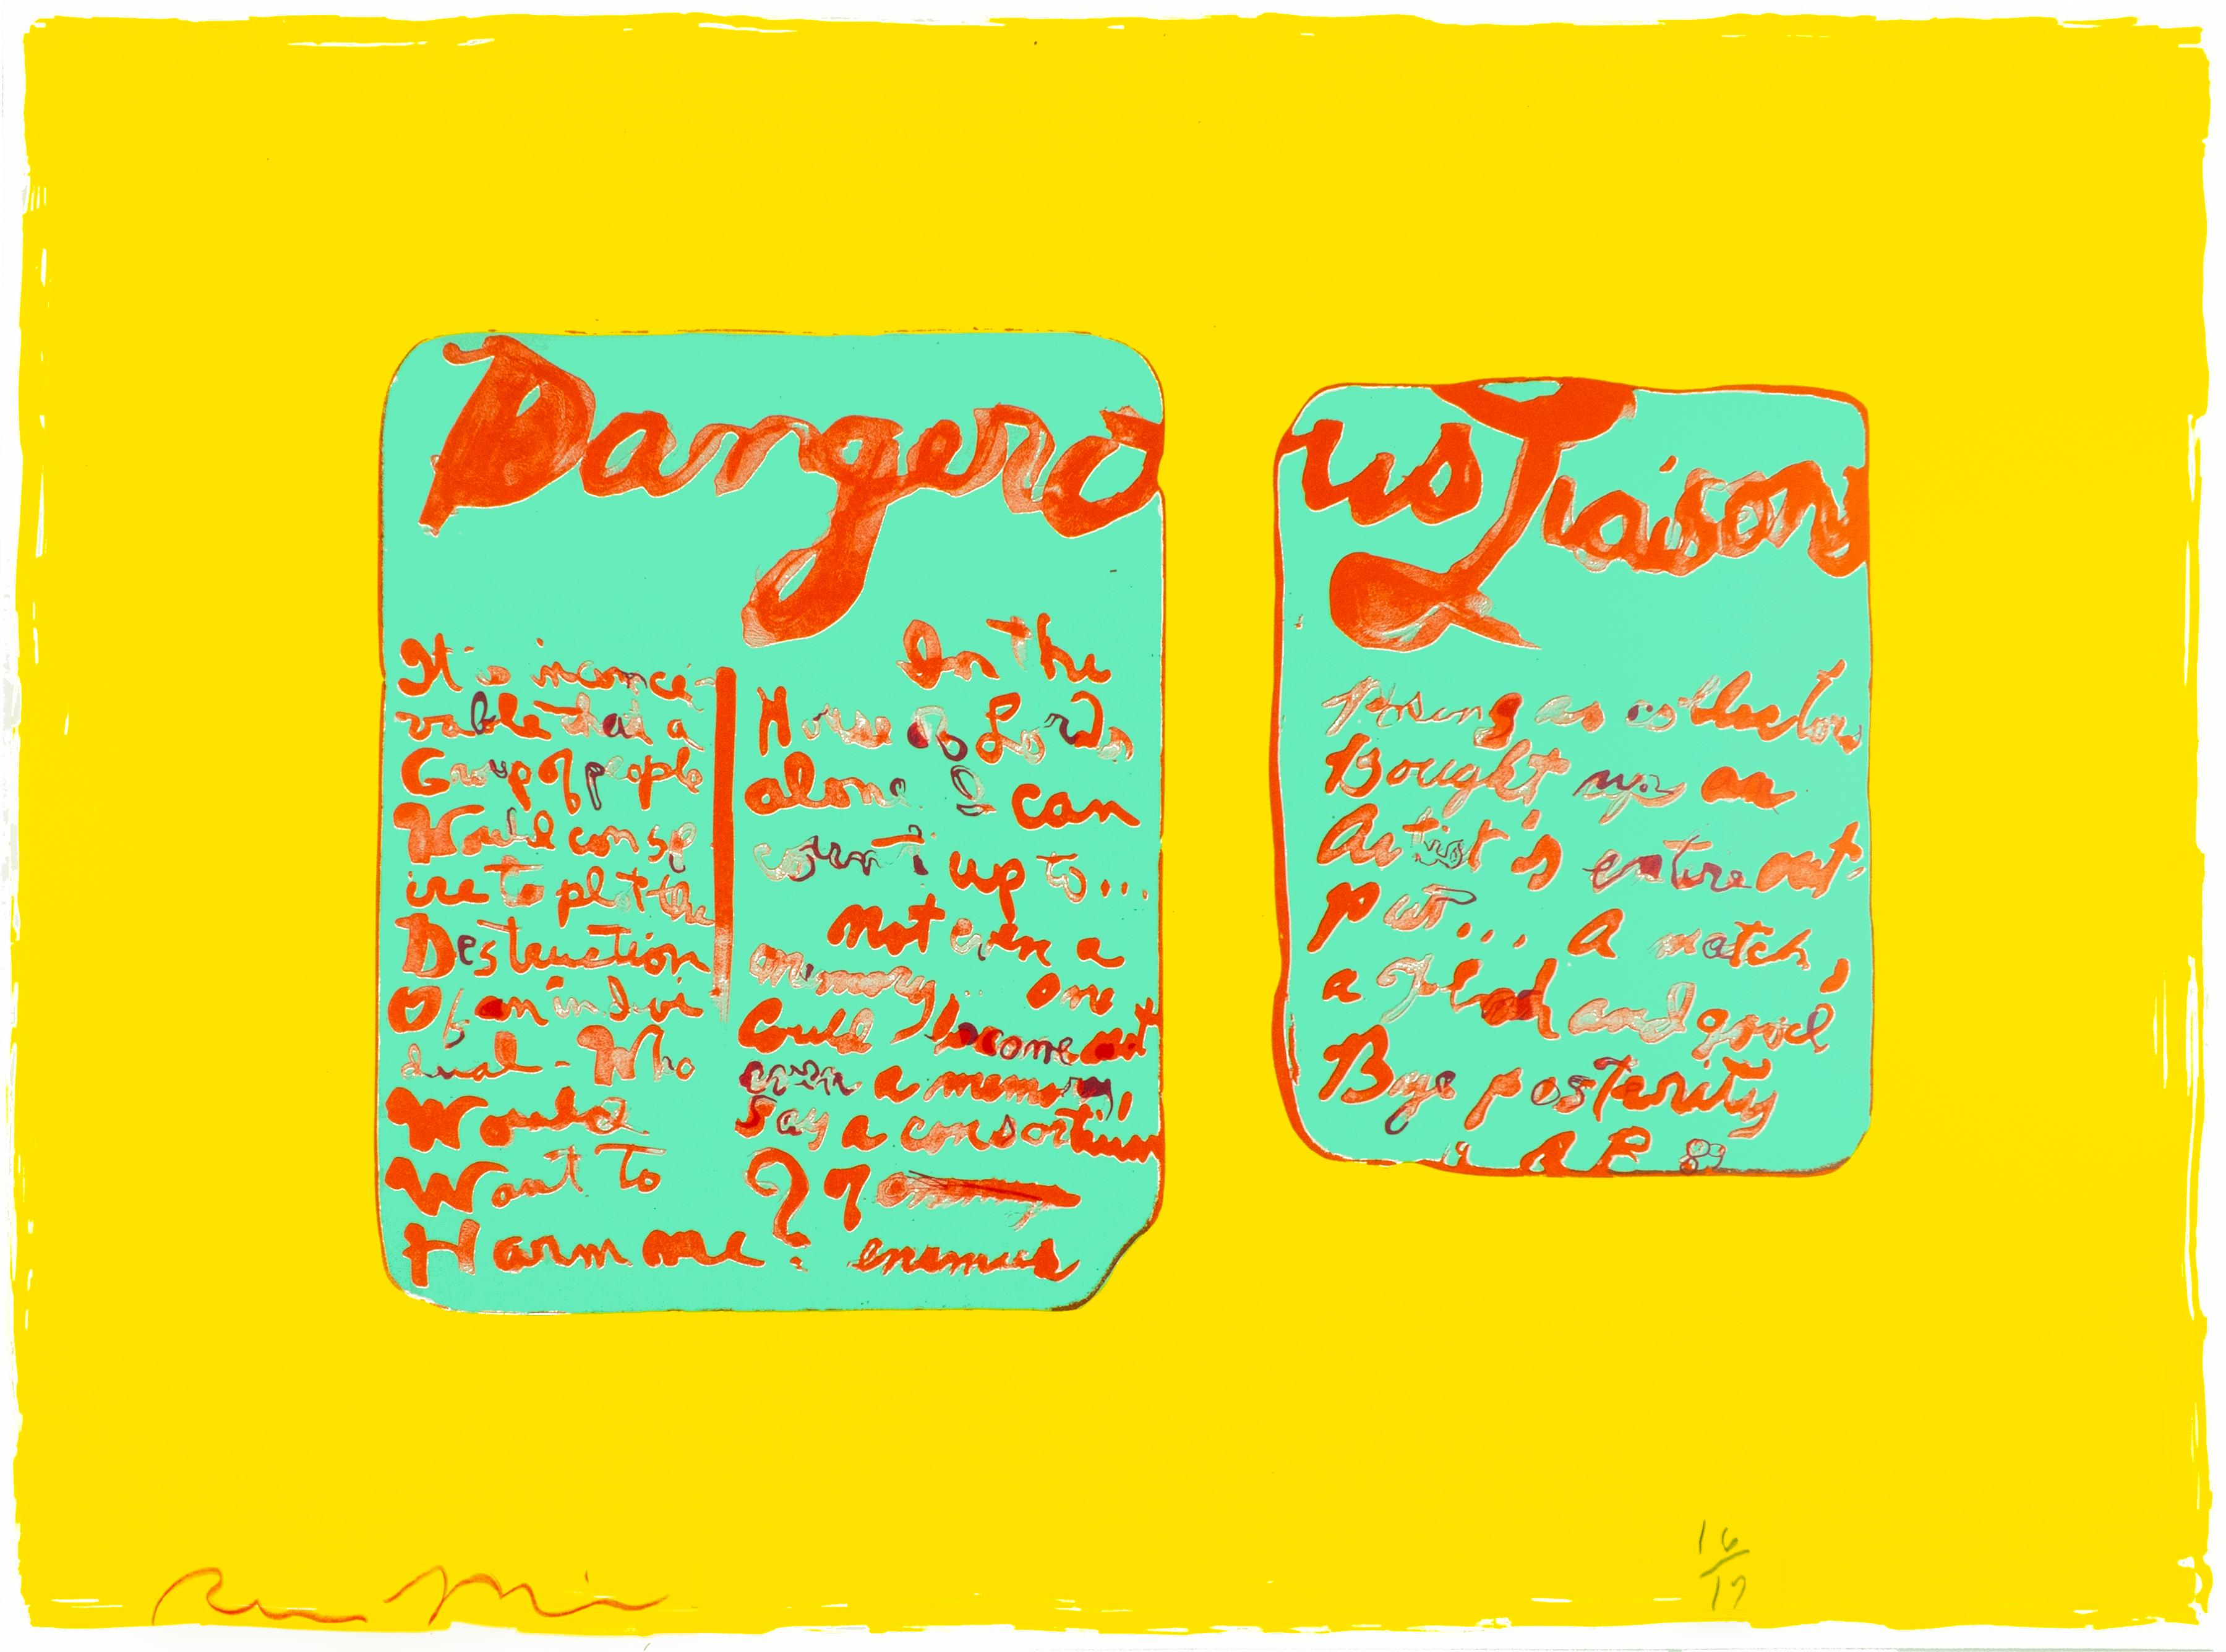 Dangerous Liaisons: Yellow, red, Tiffany blue abstract print with poetry